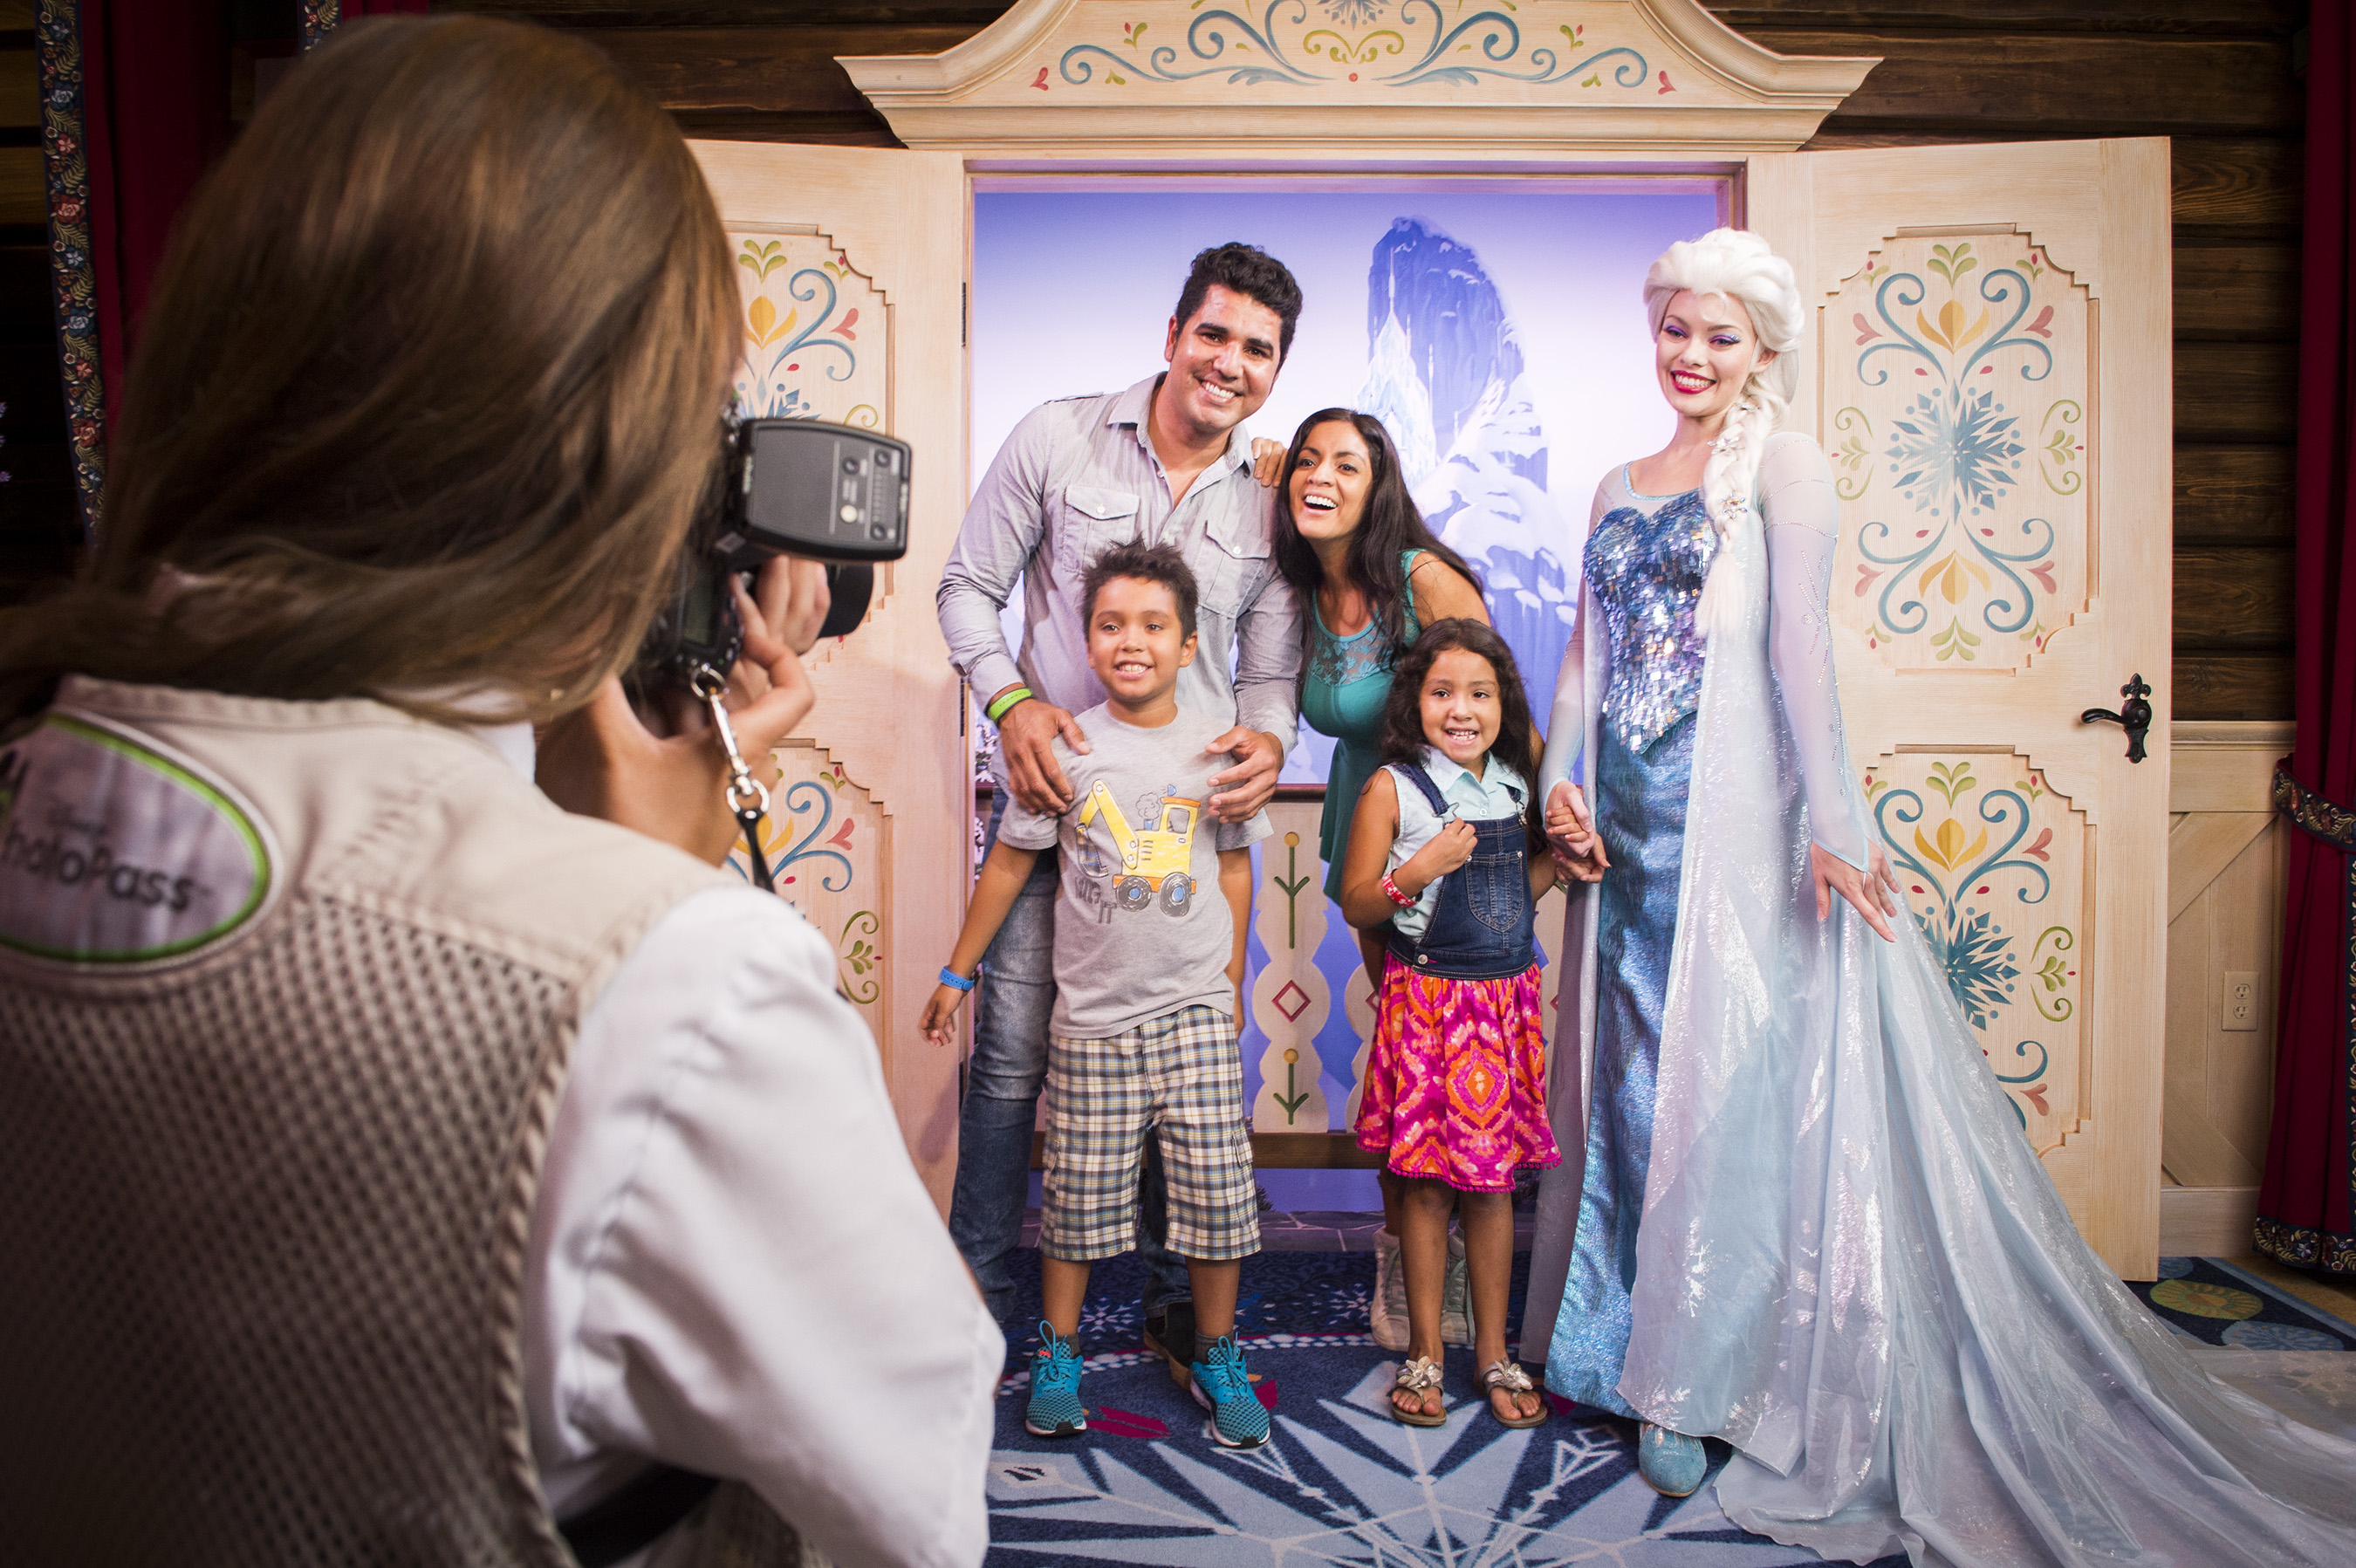 Where Can You Meet Princess Anna Queen Elsa From Frozen At